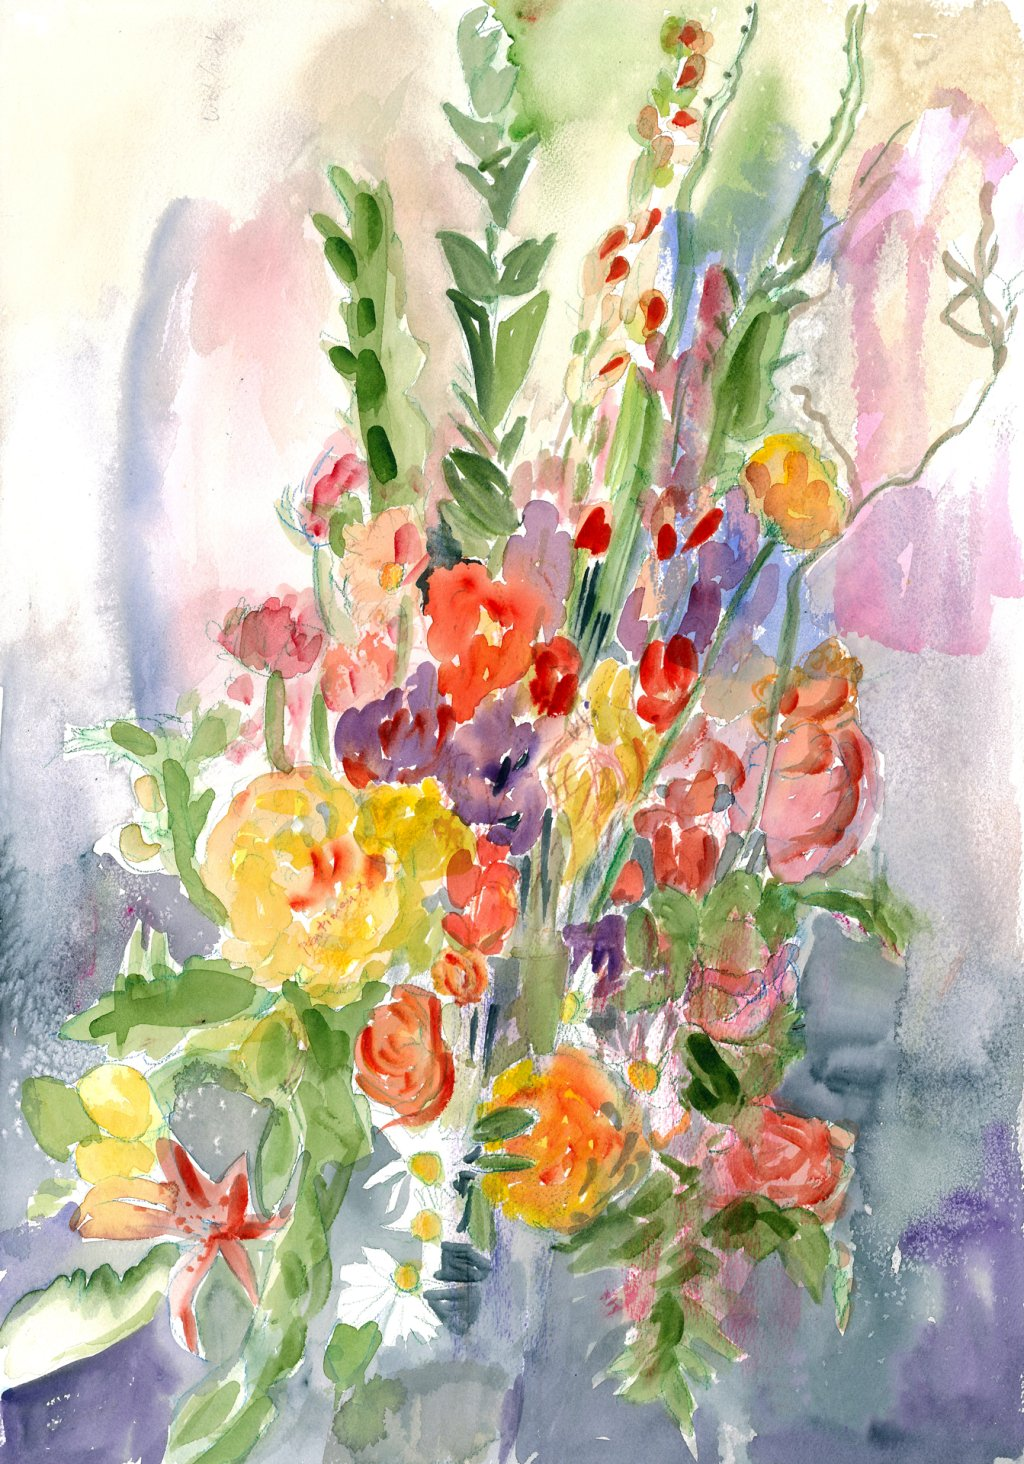 Florists Bouquet1 2013 17 x 23